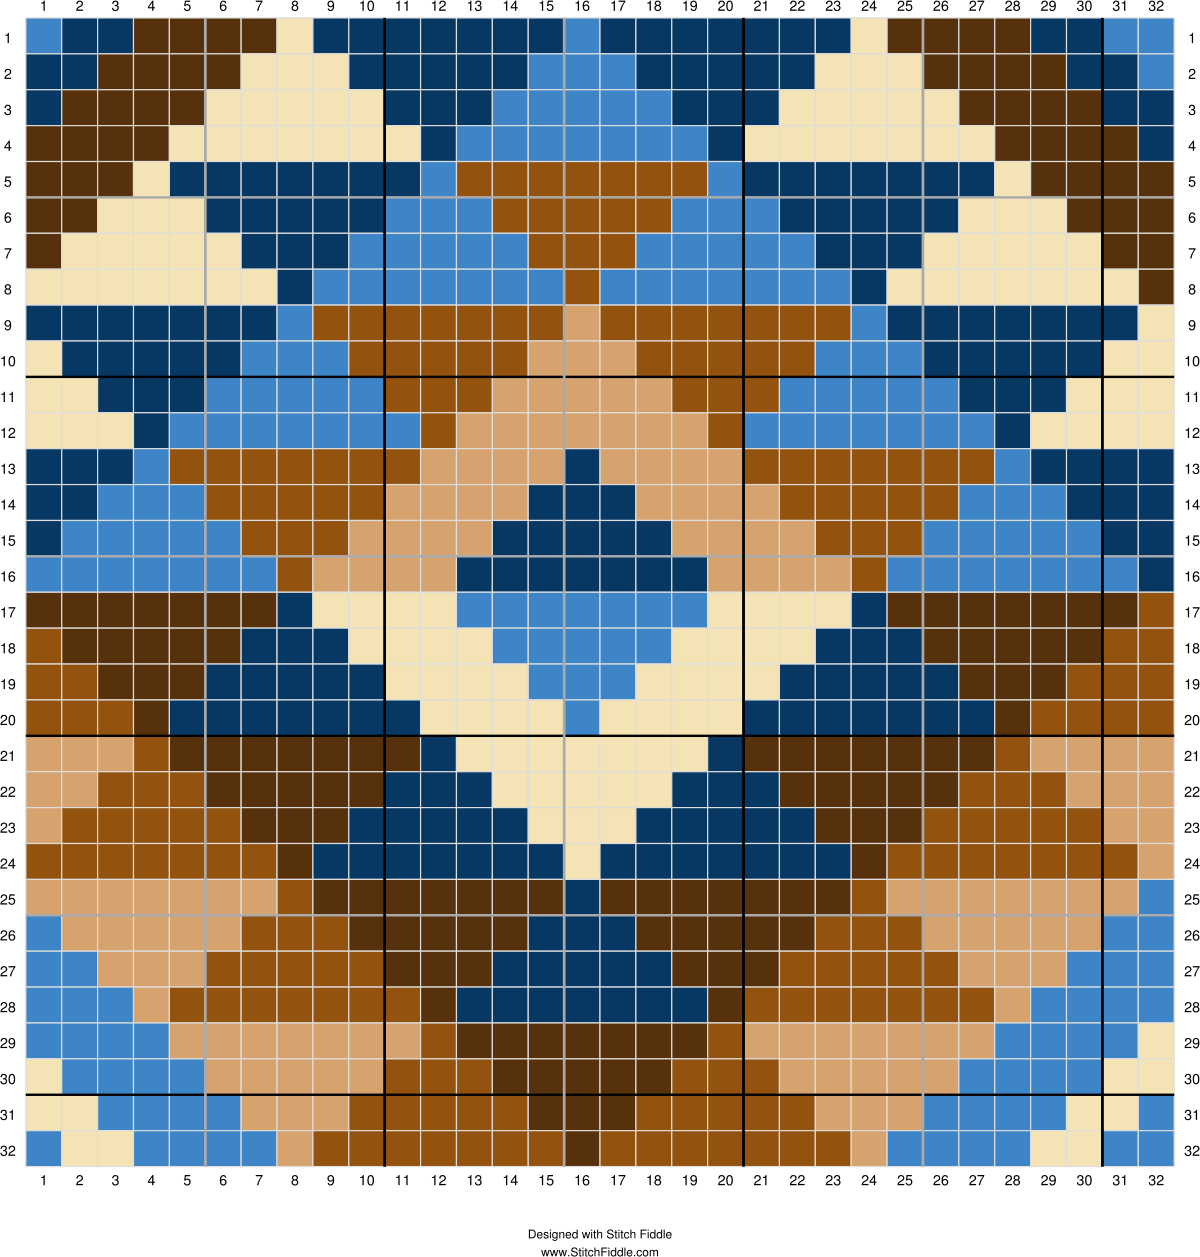 Stitch Fiddle Is An Online Crochet Knitting And Cross Stitch Pattern Maker Tapestry Crochet Patterns Cross Stitch Embroidery Cross Stitch Patterns